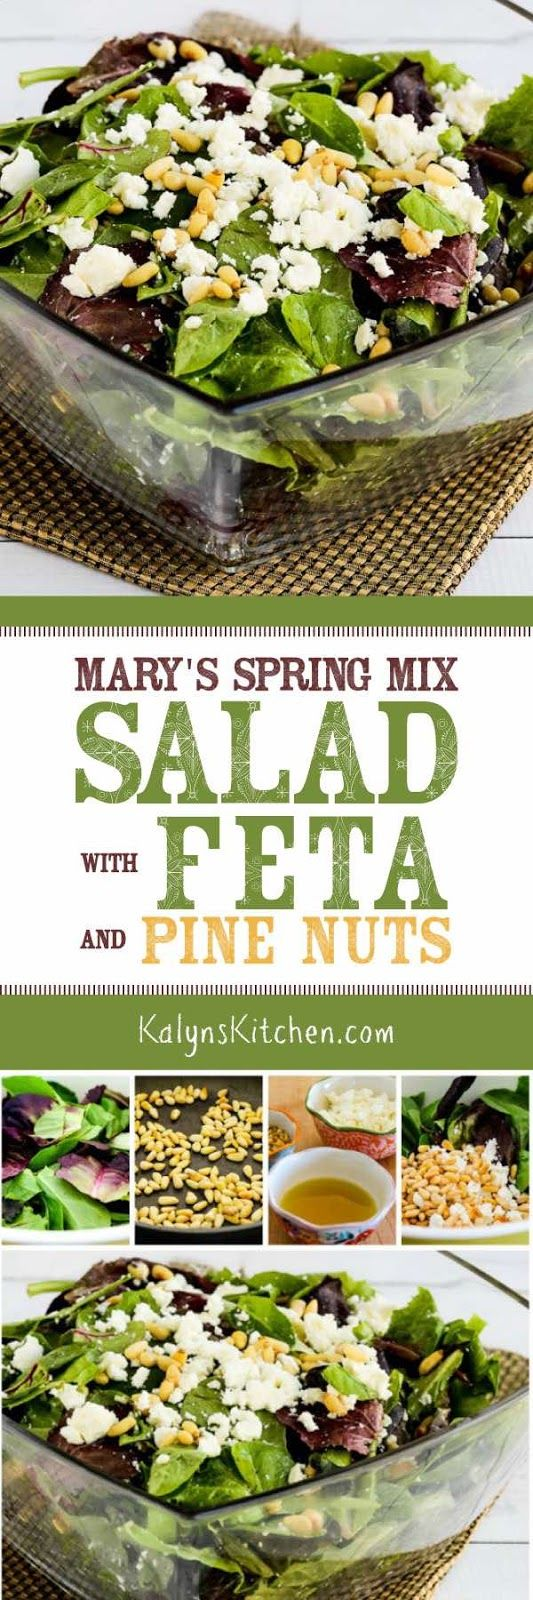 Mary's Spring Mix Salad with Feta and Pine Nuts is a quick and easy low-carb and gluten-free salad I make over and over when I'm trying to eat more greens. And this tasty salad is always a treat because FETA! PINE NUTS! [found on KalynsKitchen.com] #LowCarbSalad #SpringMixSalad #LowCarbSpringMixSalad